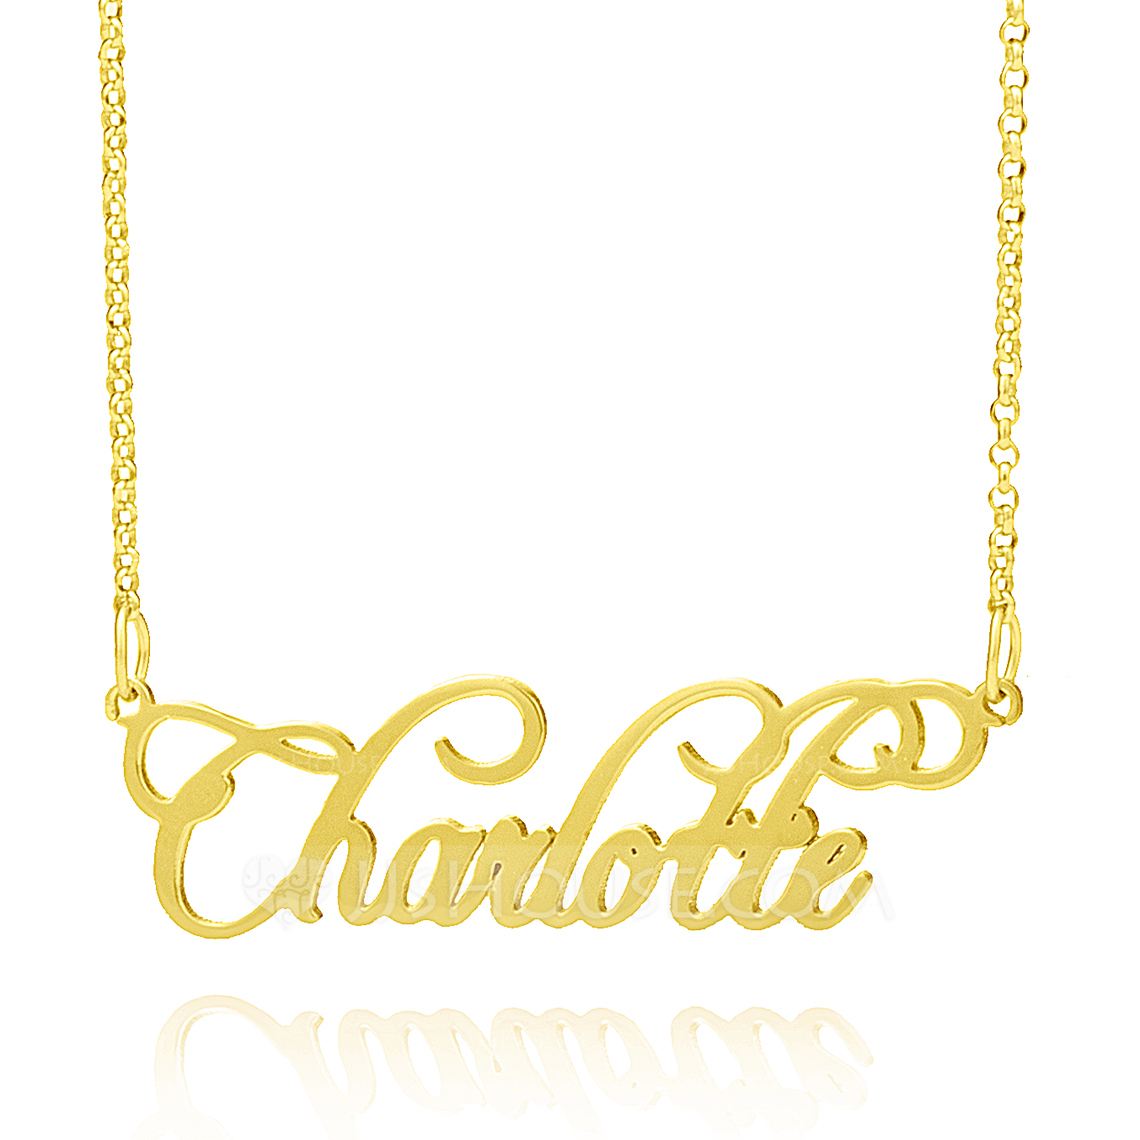 Custom 18k Gold Plated Silver Cursive Vintage Name Necklace - Birthday Gifts Mother's Day Gifts